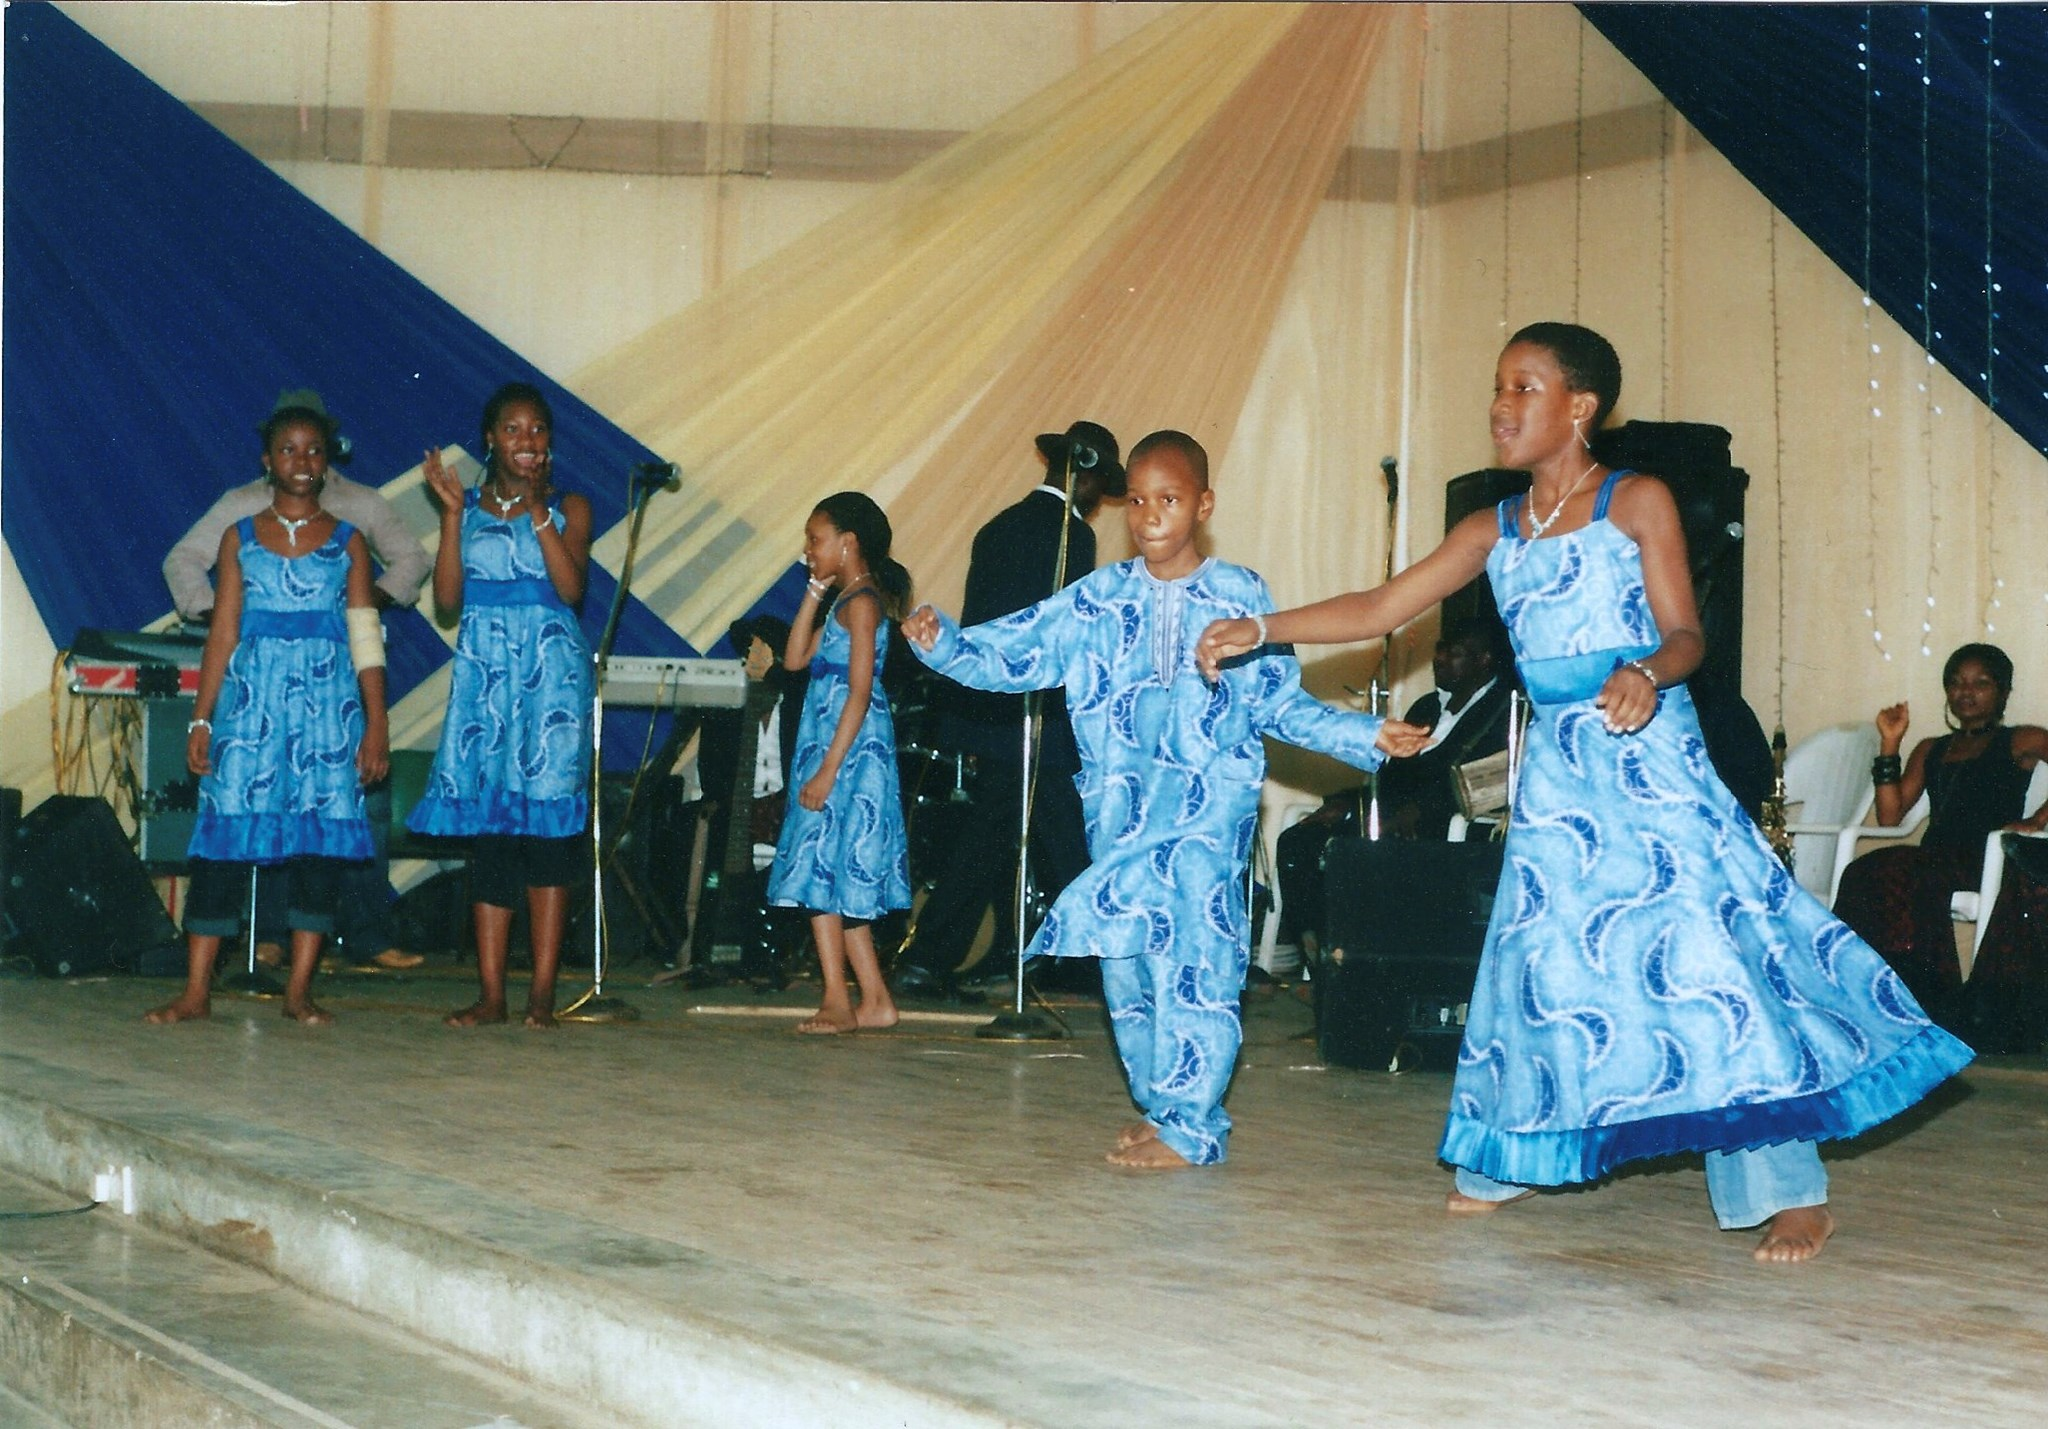 Oreofe & Adeoto, Iyetade's children - a special dance for granny's birthday